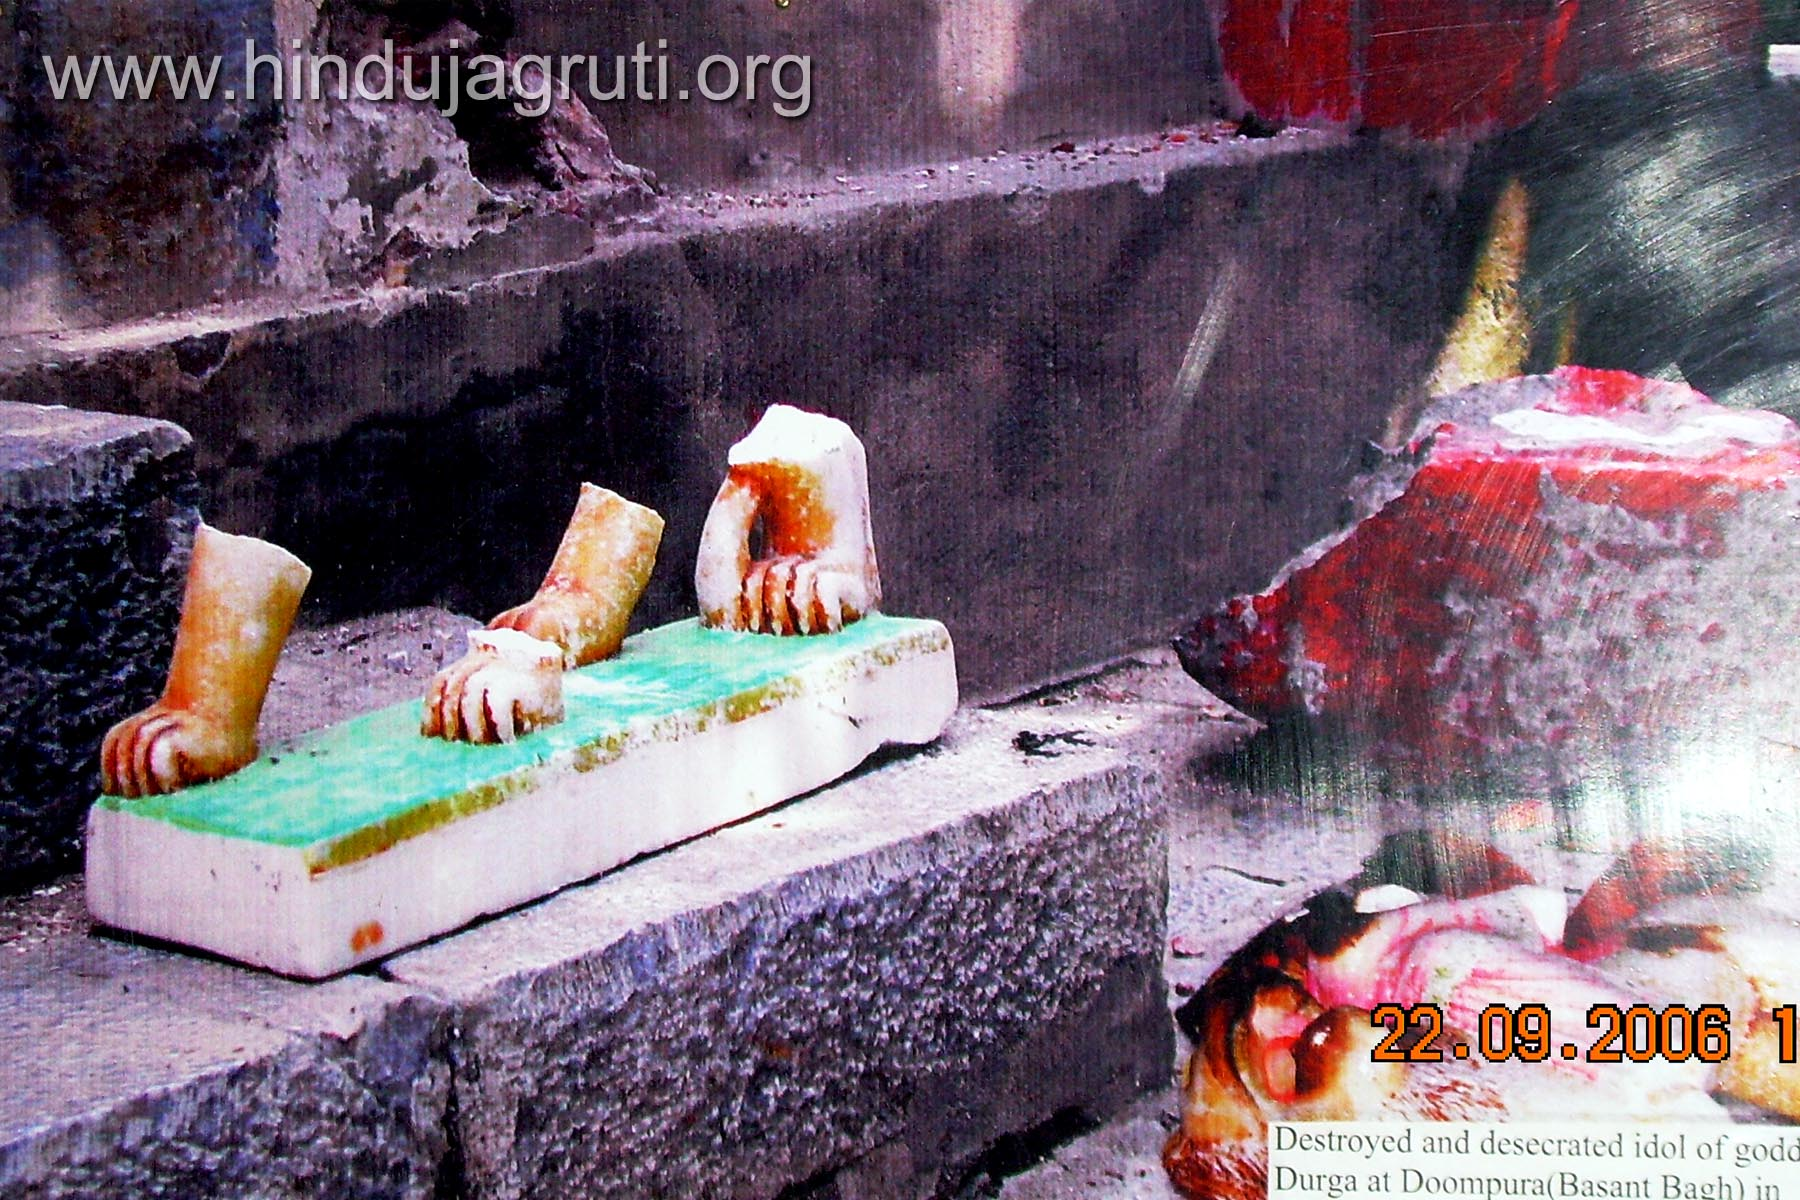 1. Destroyed and desecrated idol of goddess Durga at Doompura (Basant Bagh) in Srinagar